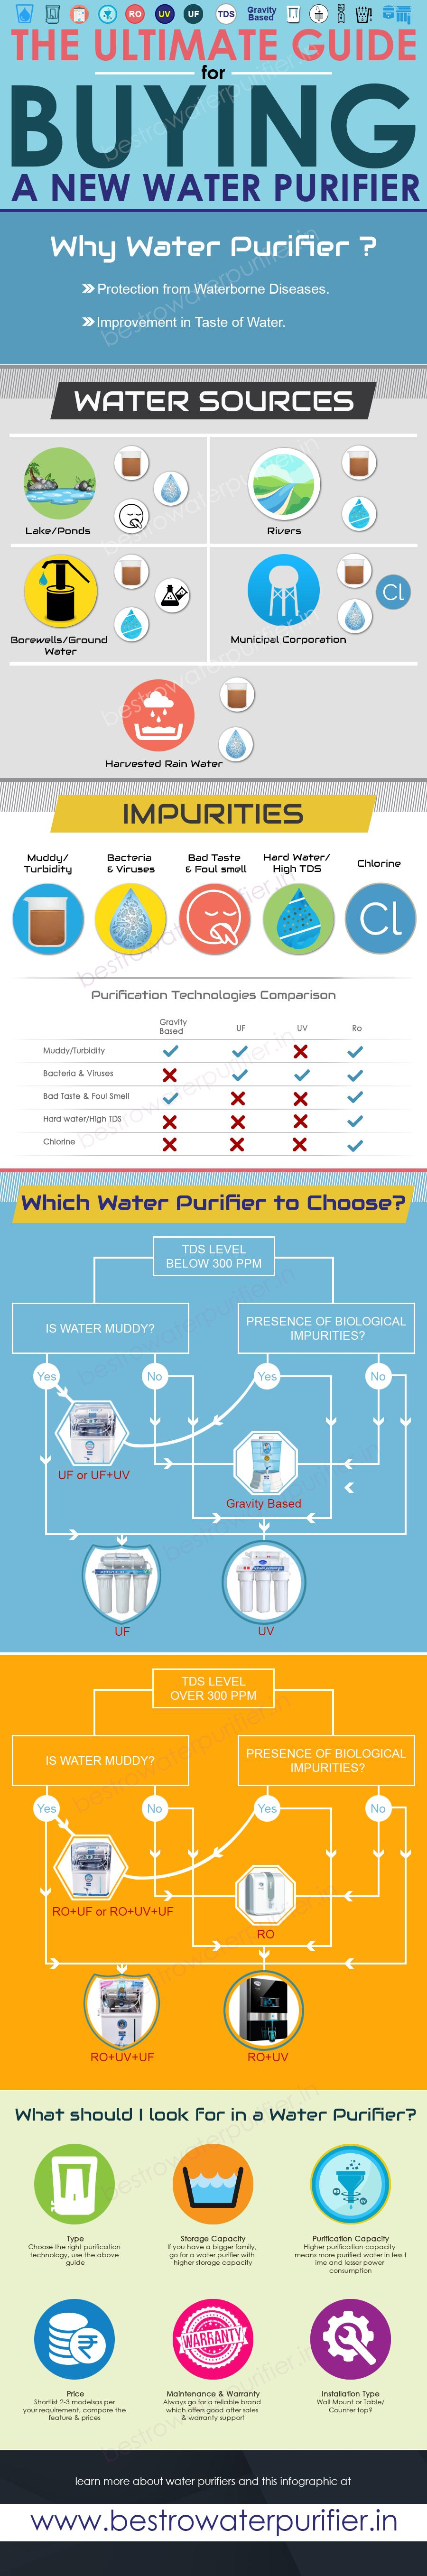 Importance of Water Purifier